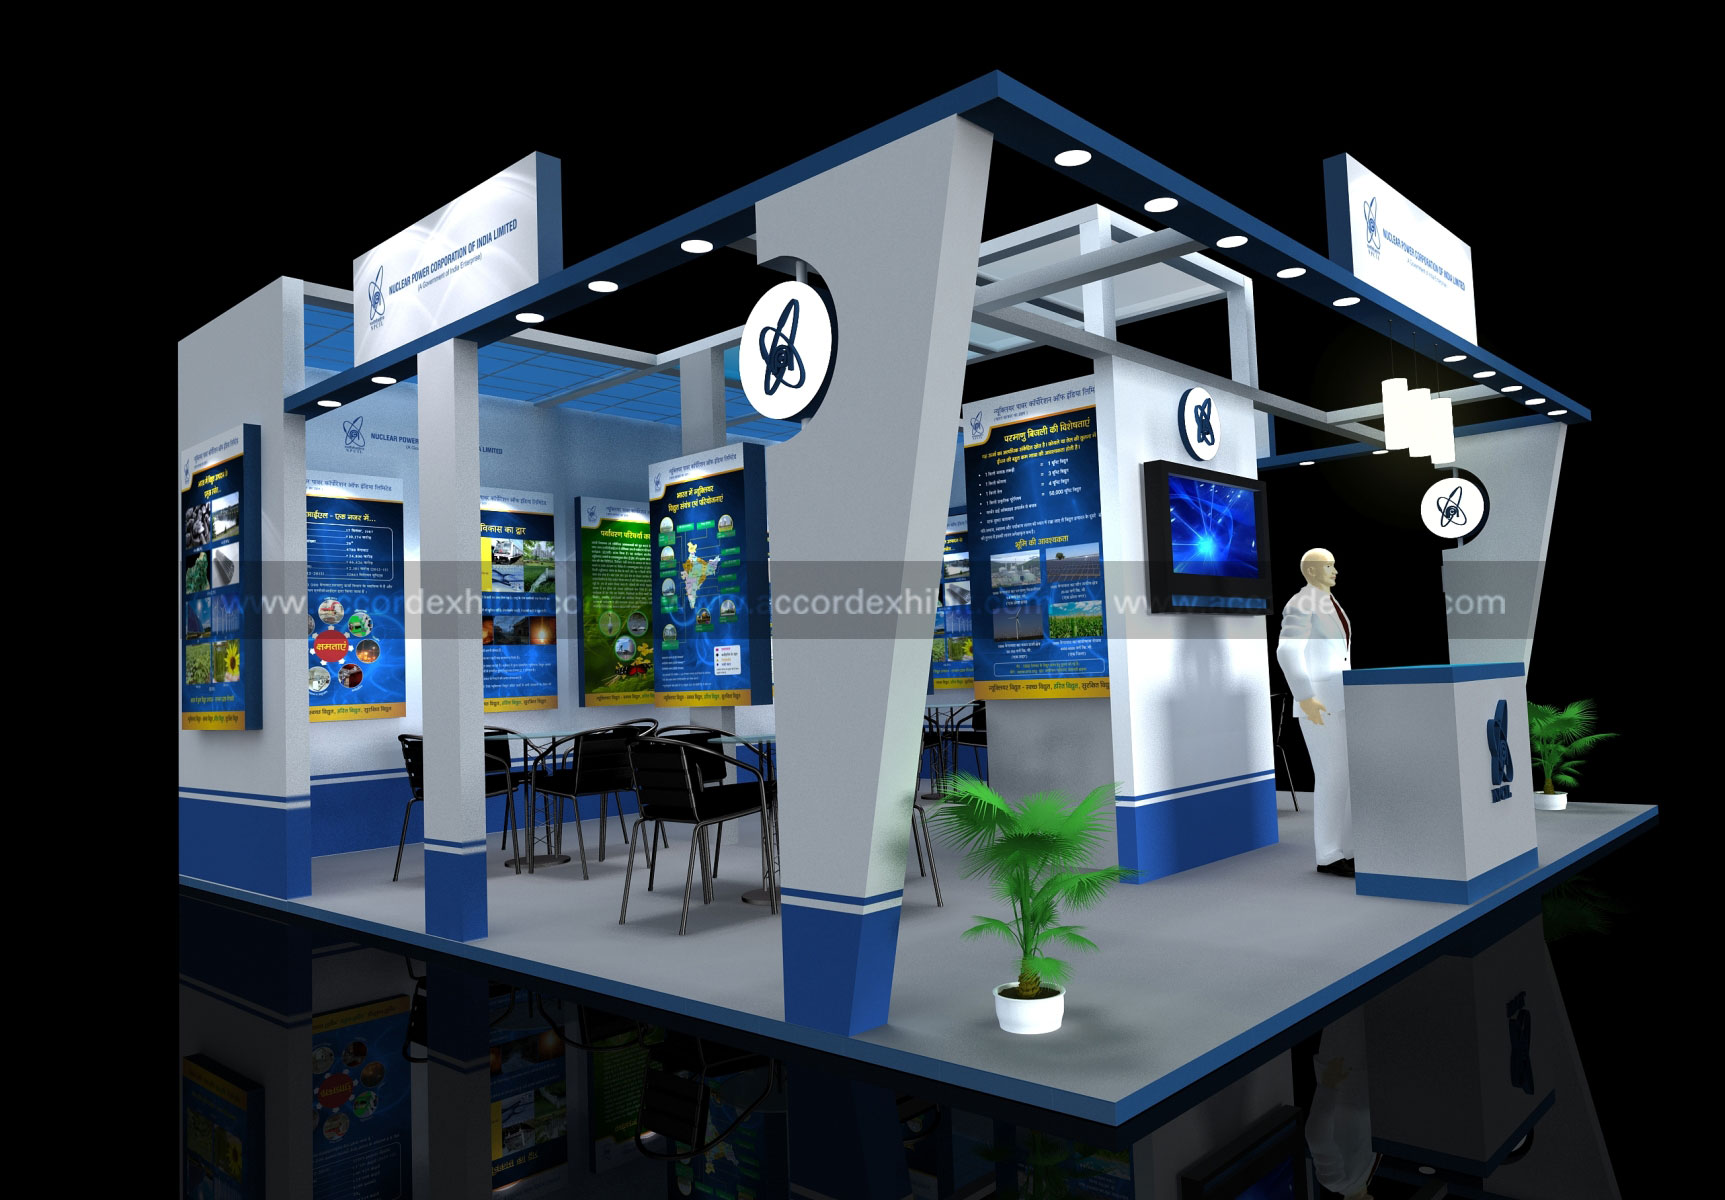 Exhibition Stall Designer Job : Stall design exhibition stall design stall fabrication services